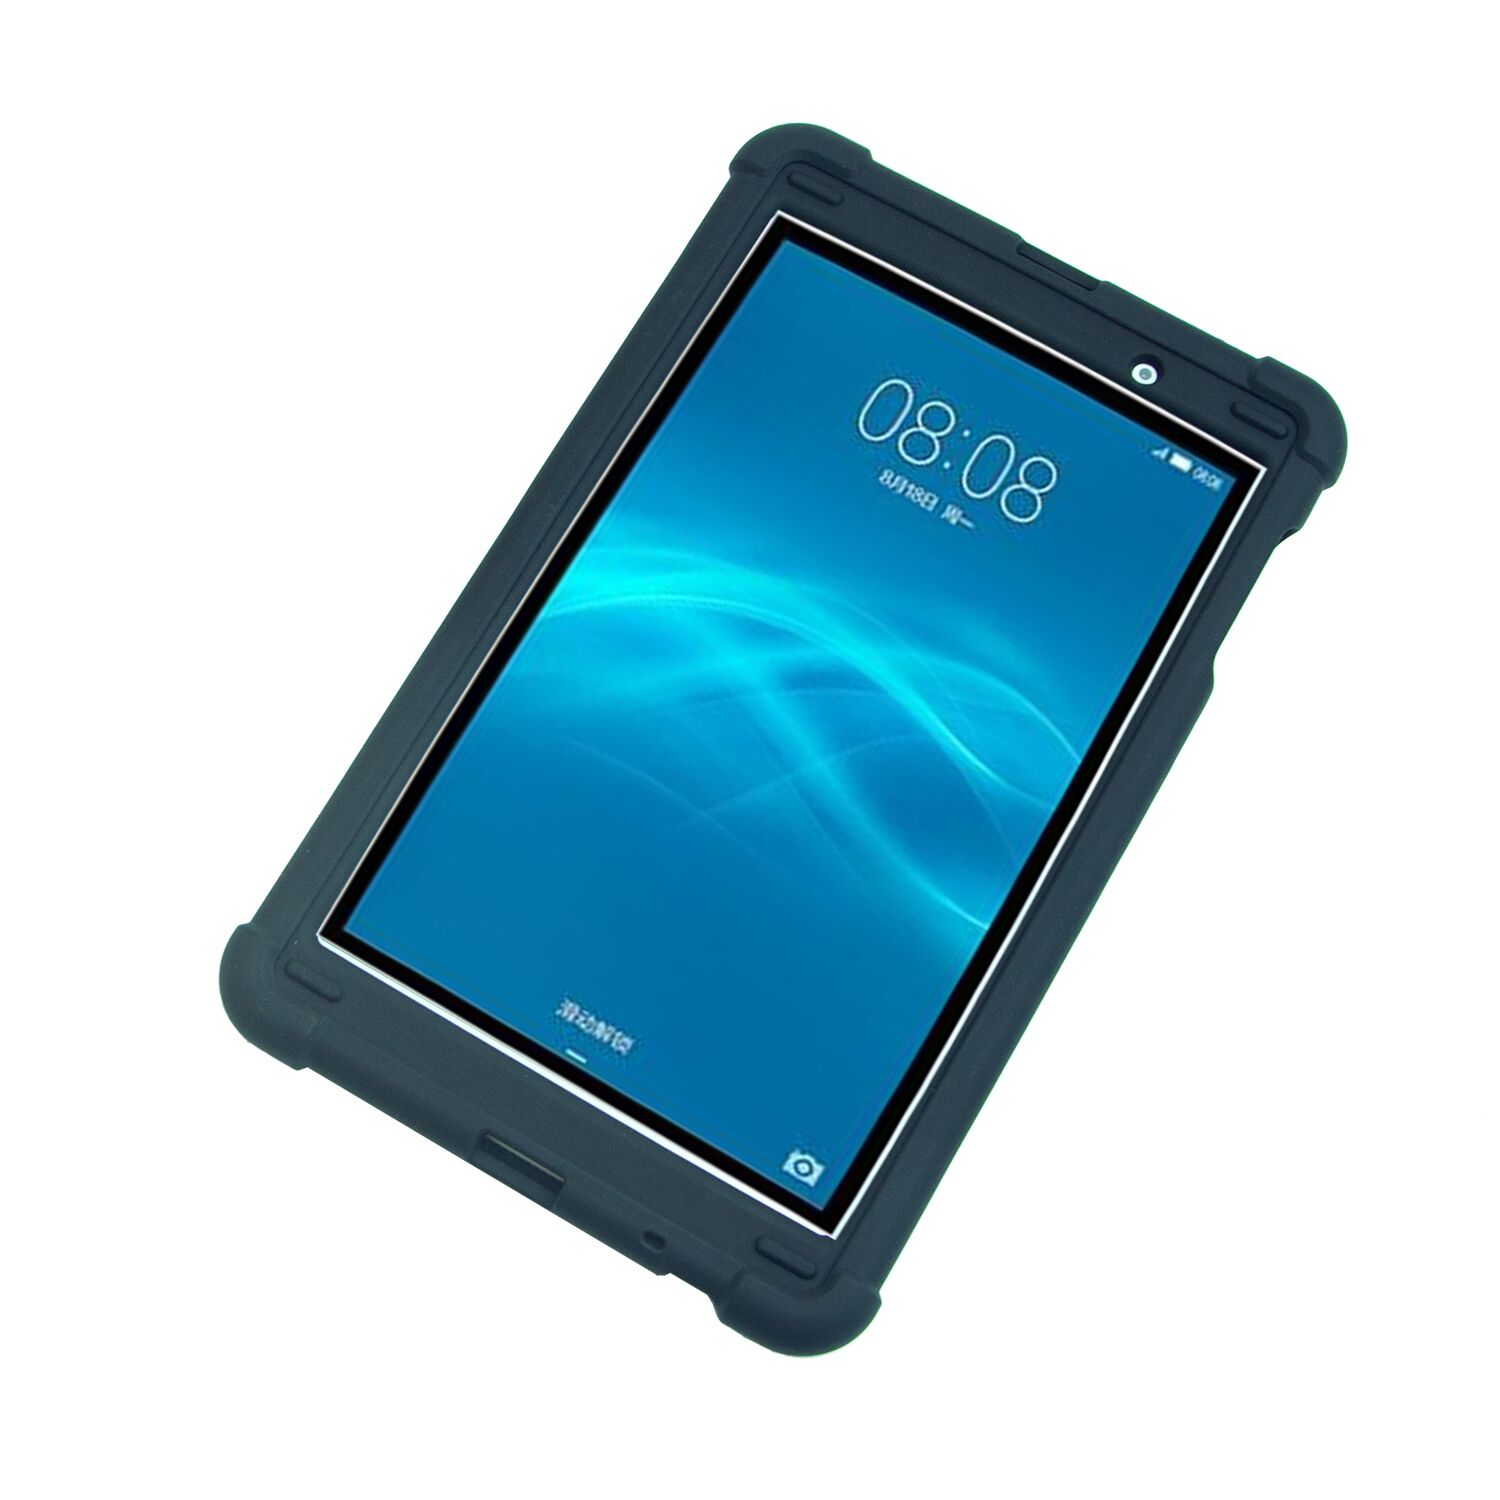 MingShore For Huawei MediaPad M2 Lite 10.1 FDR-A03L Silicone Soft Case For Tablet 2 T2 Pro 10.0 FDR-A01W Tablet Rugged Cover видеокамера sony fdr x1000v 4k